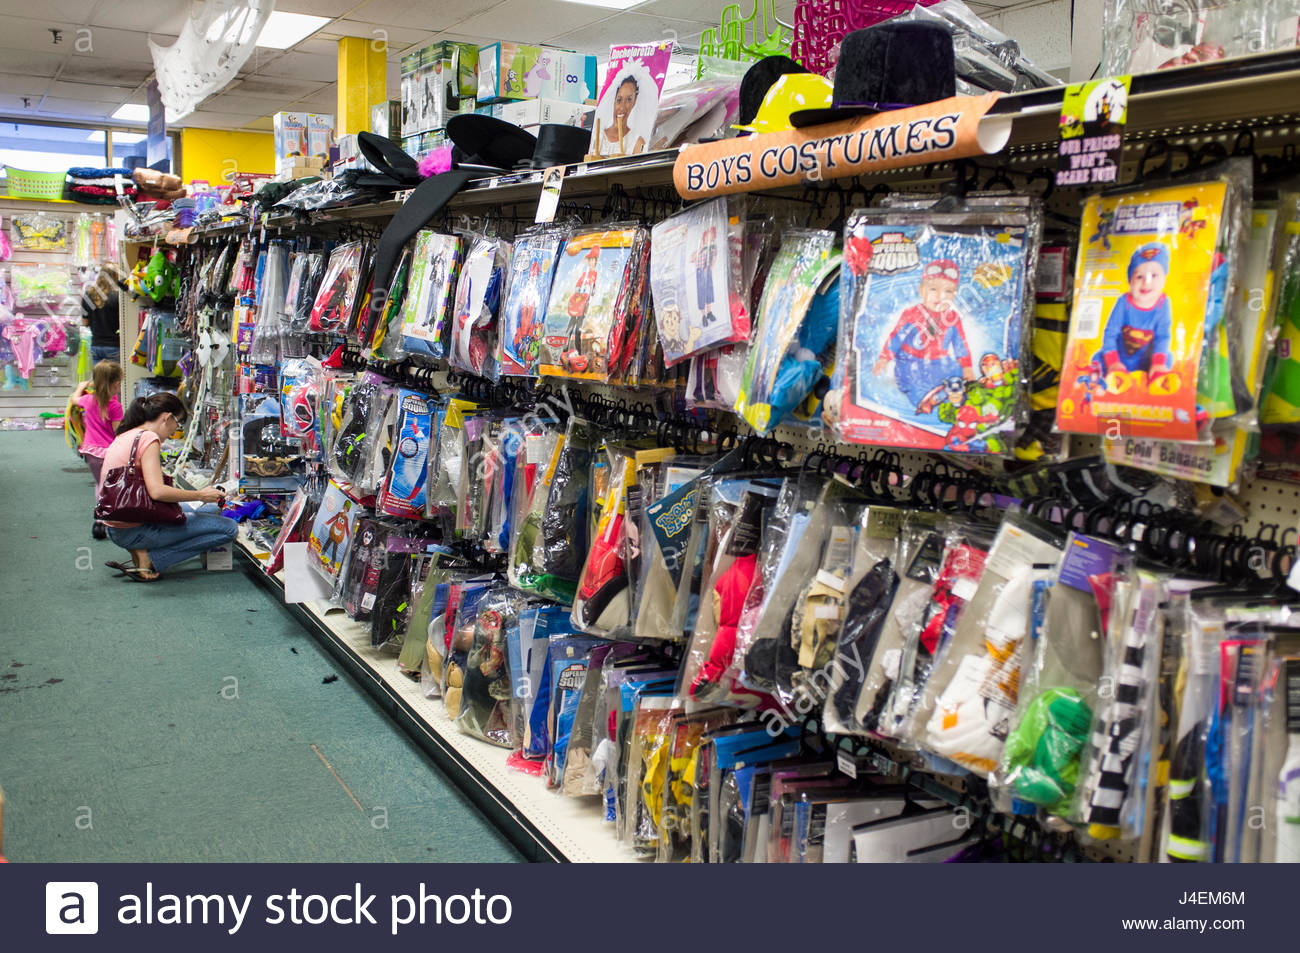 halloween costumes shop stock photos & halloween costumes shop stock